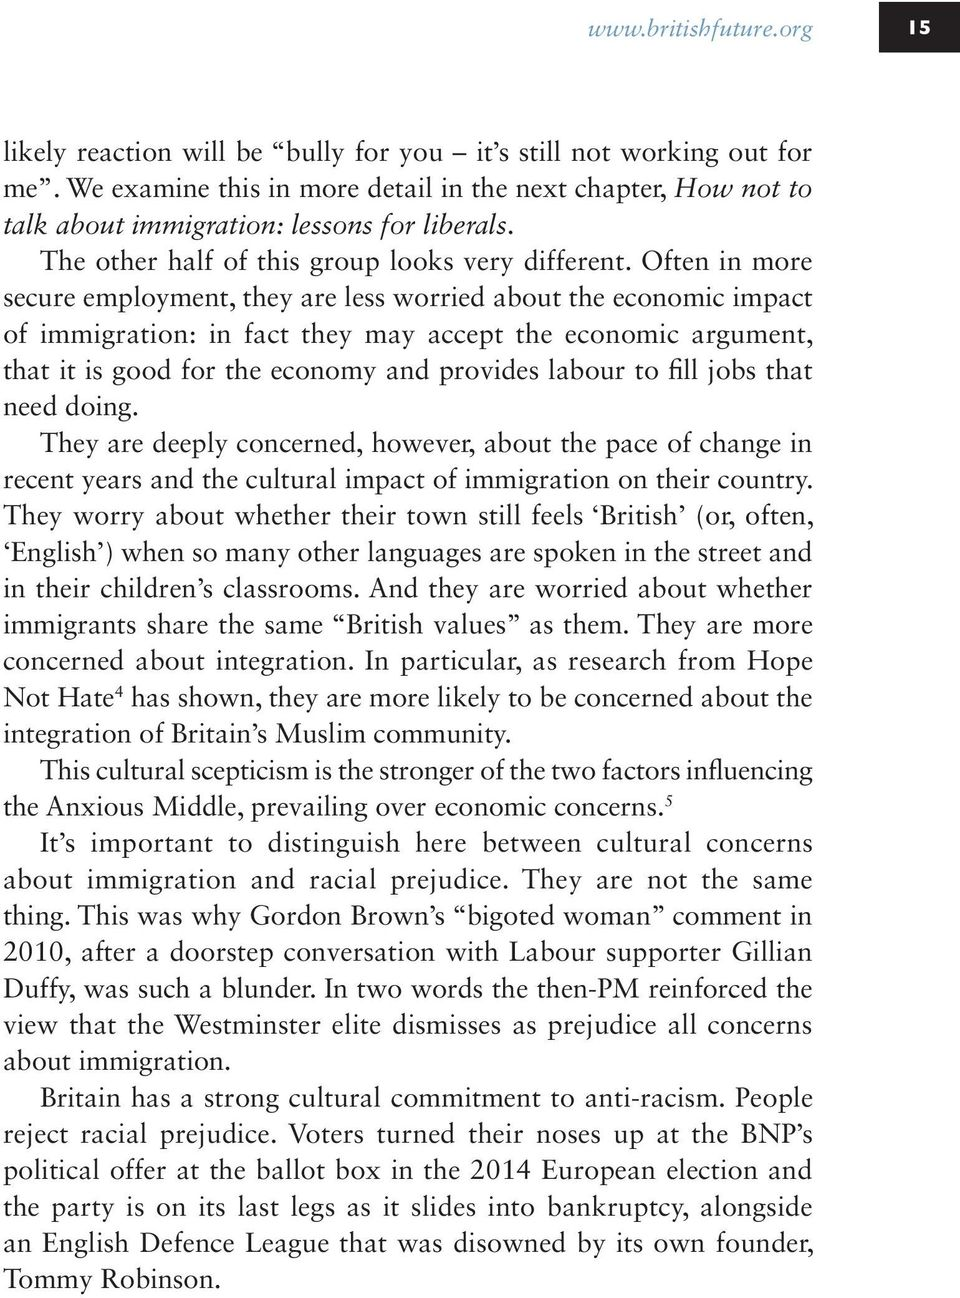 Often in more secure employment, they are less worried about the economic impact of immigration: in fact they may accept the economic argument, that it is good for the economy and provides labour to